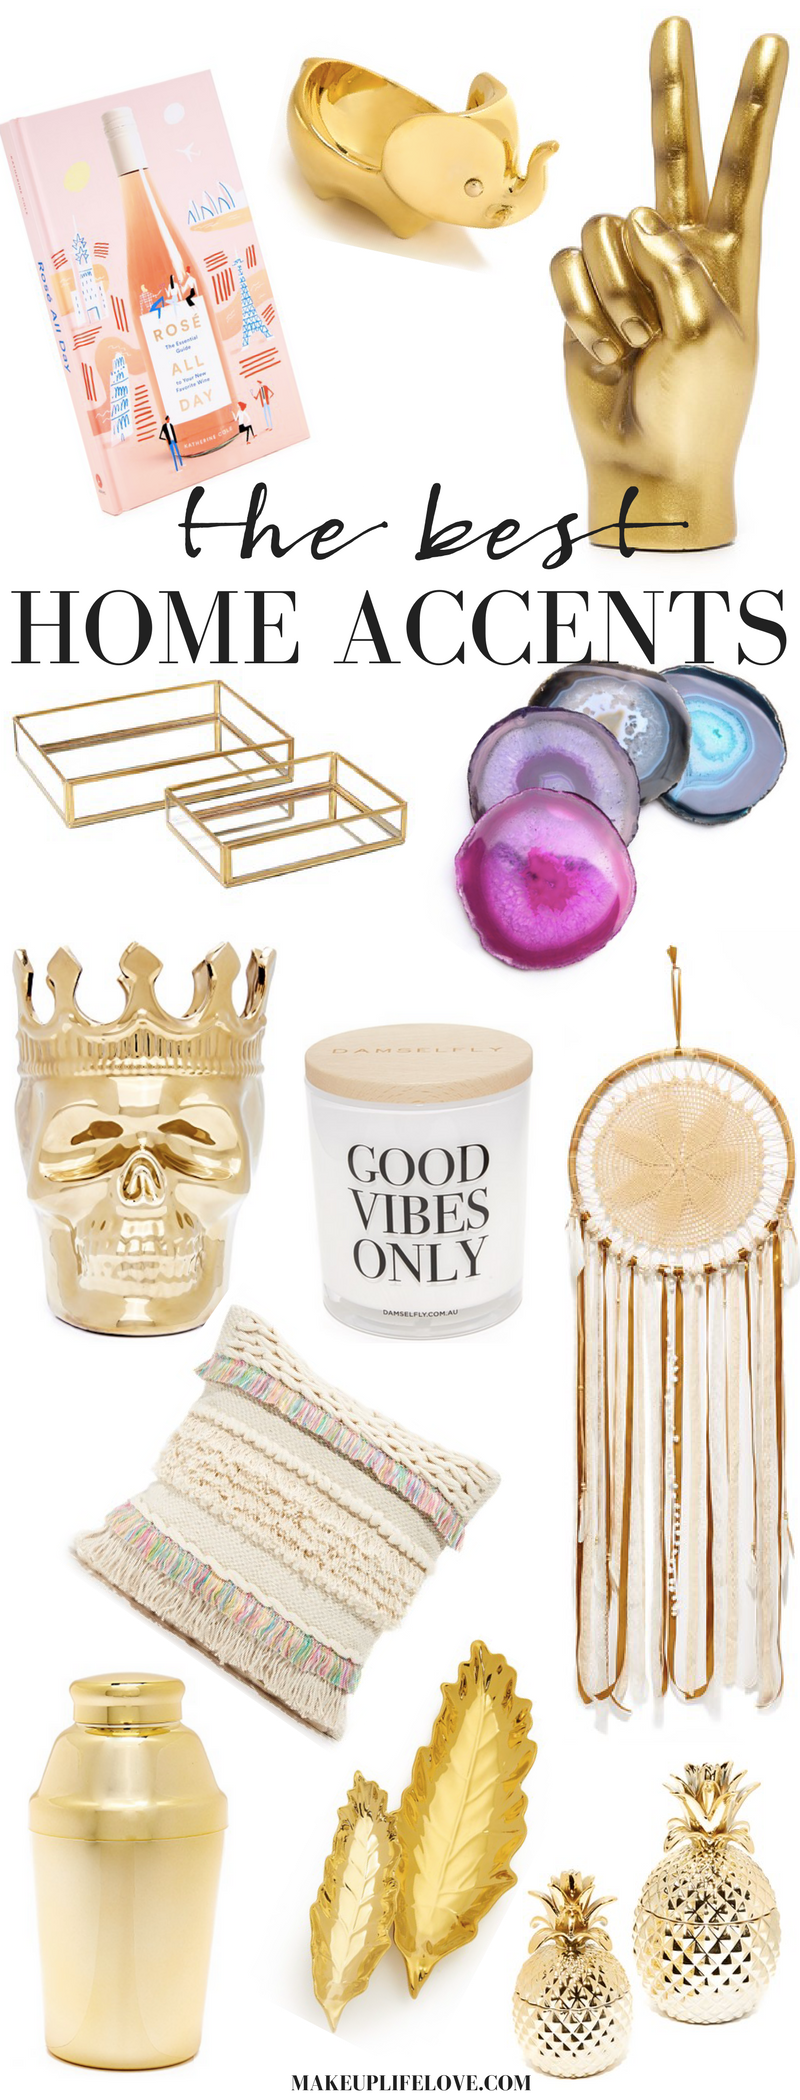 Looking to add a bit of new decor to your home? I rounded up the BEST home accents that are currently on sale now.